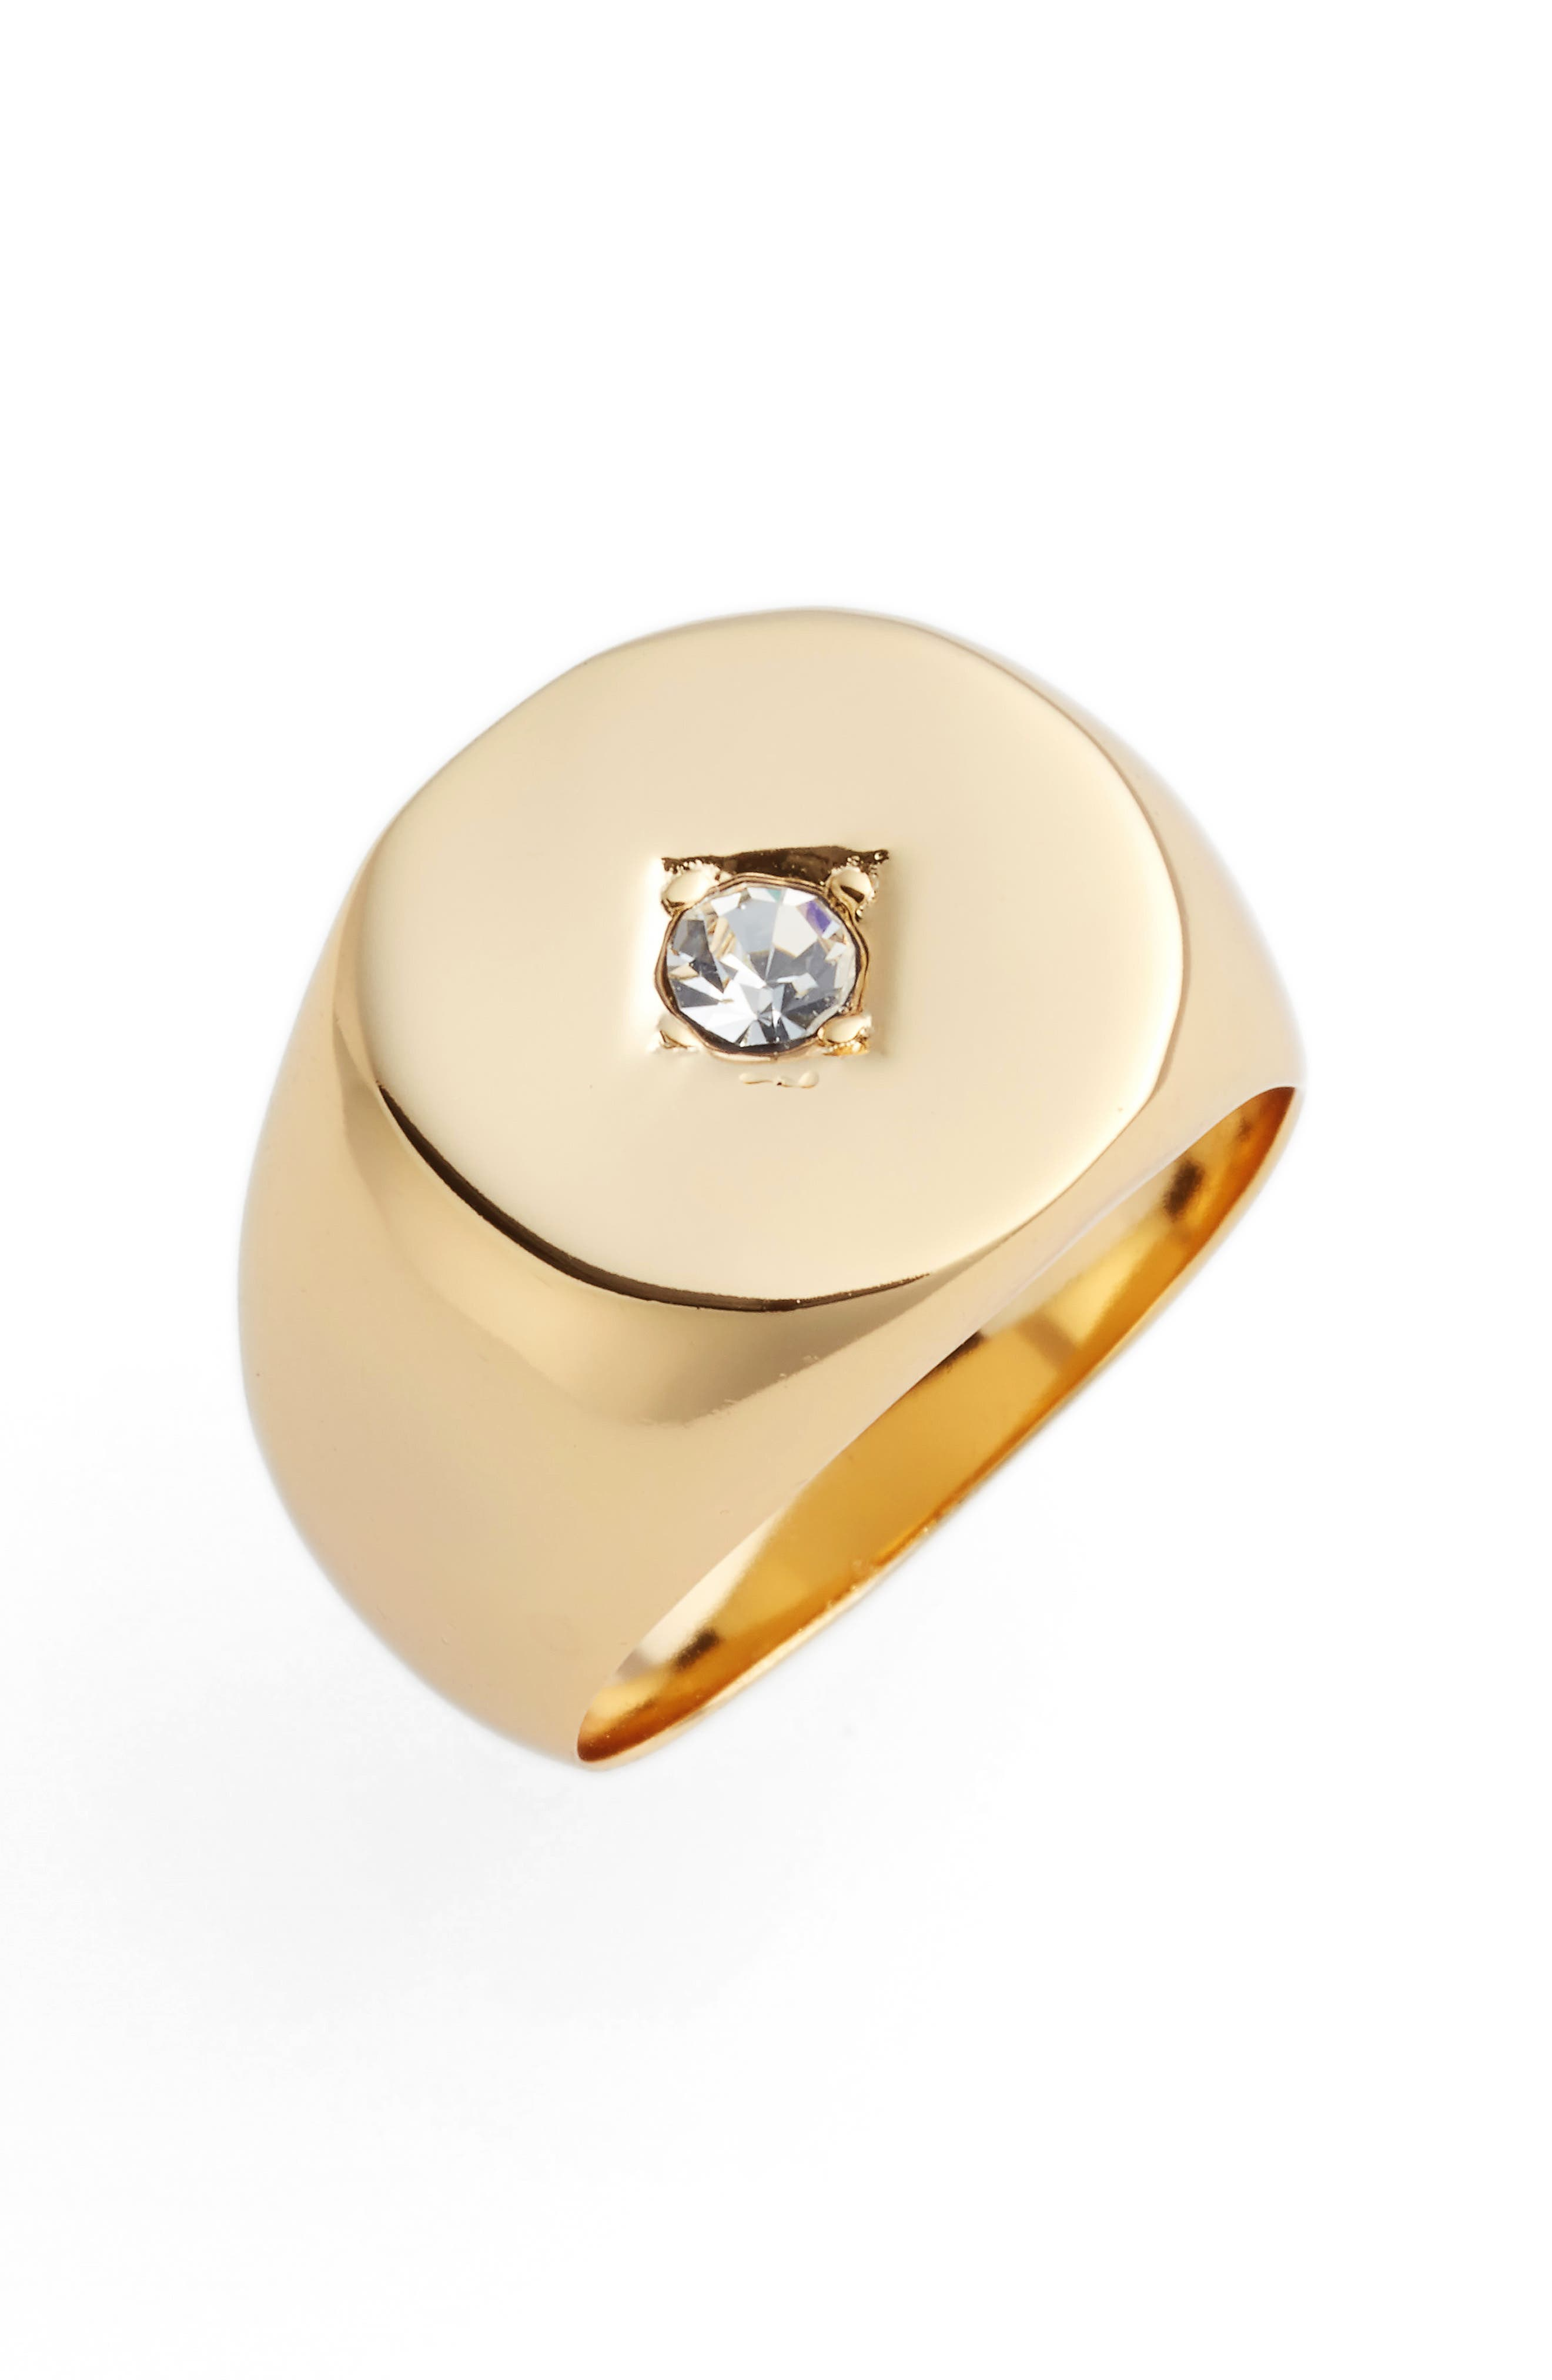 Tulum Signet Ring,                         Main,                         color, Gold/ Clear